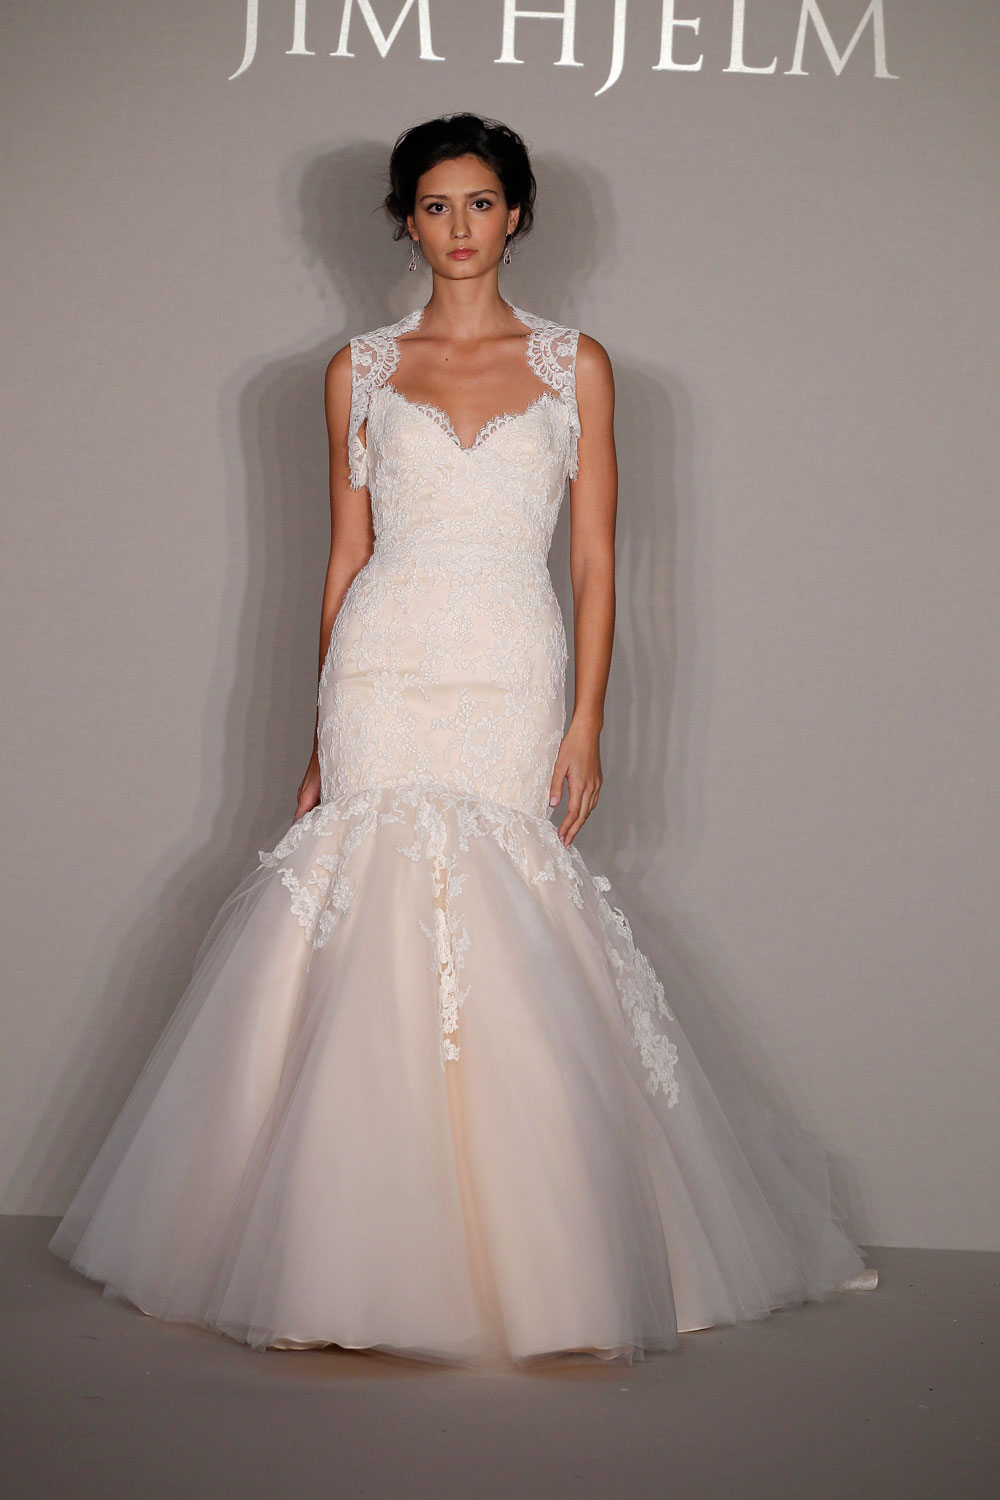 Jim hjelm wedding gowns for Jim hjelm wedding dresses